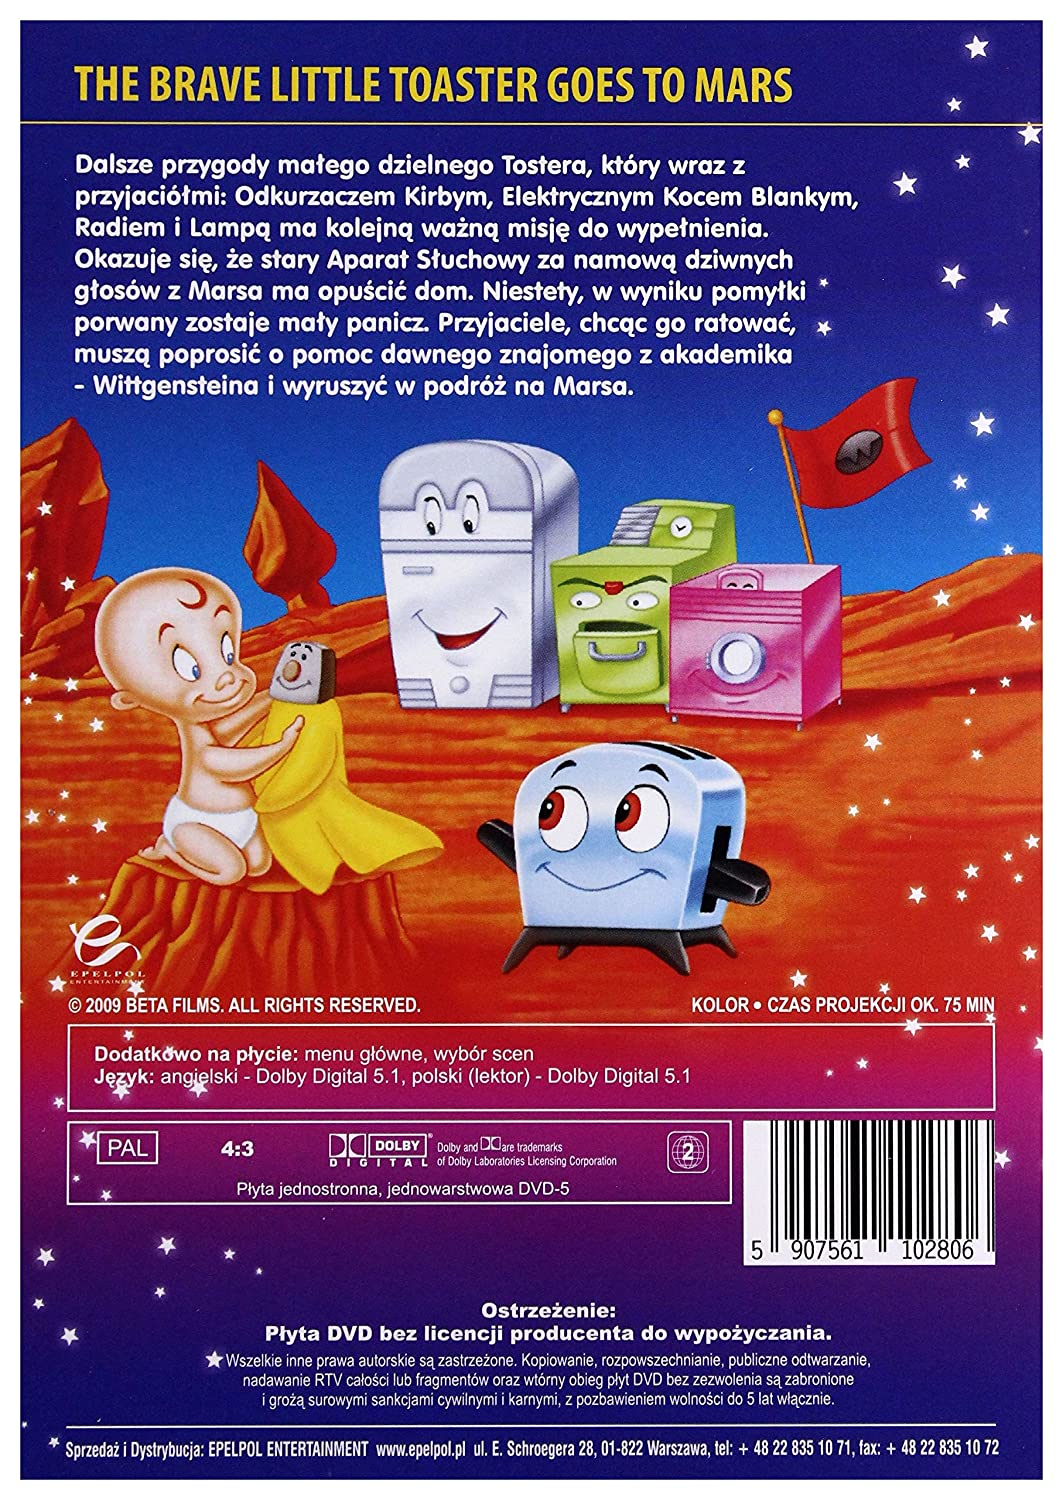 The Brave Little Toaster Goes to Mars DVD Region 2 English audio